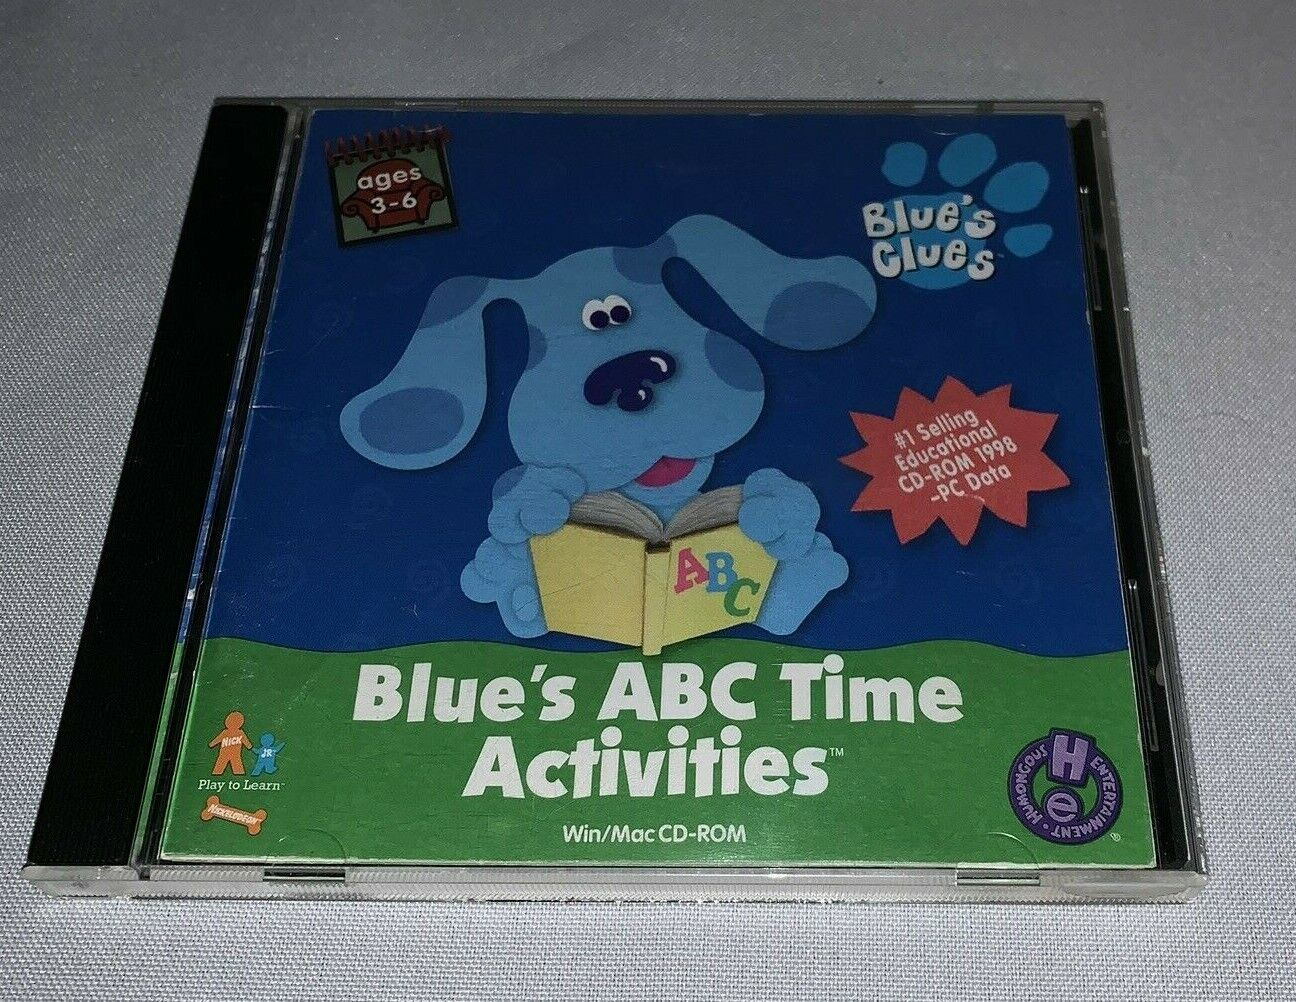 Computer Games - Blue's Clues Blue's ABC Time Activities CD Rom PC Educational Computer Software